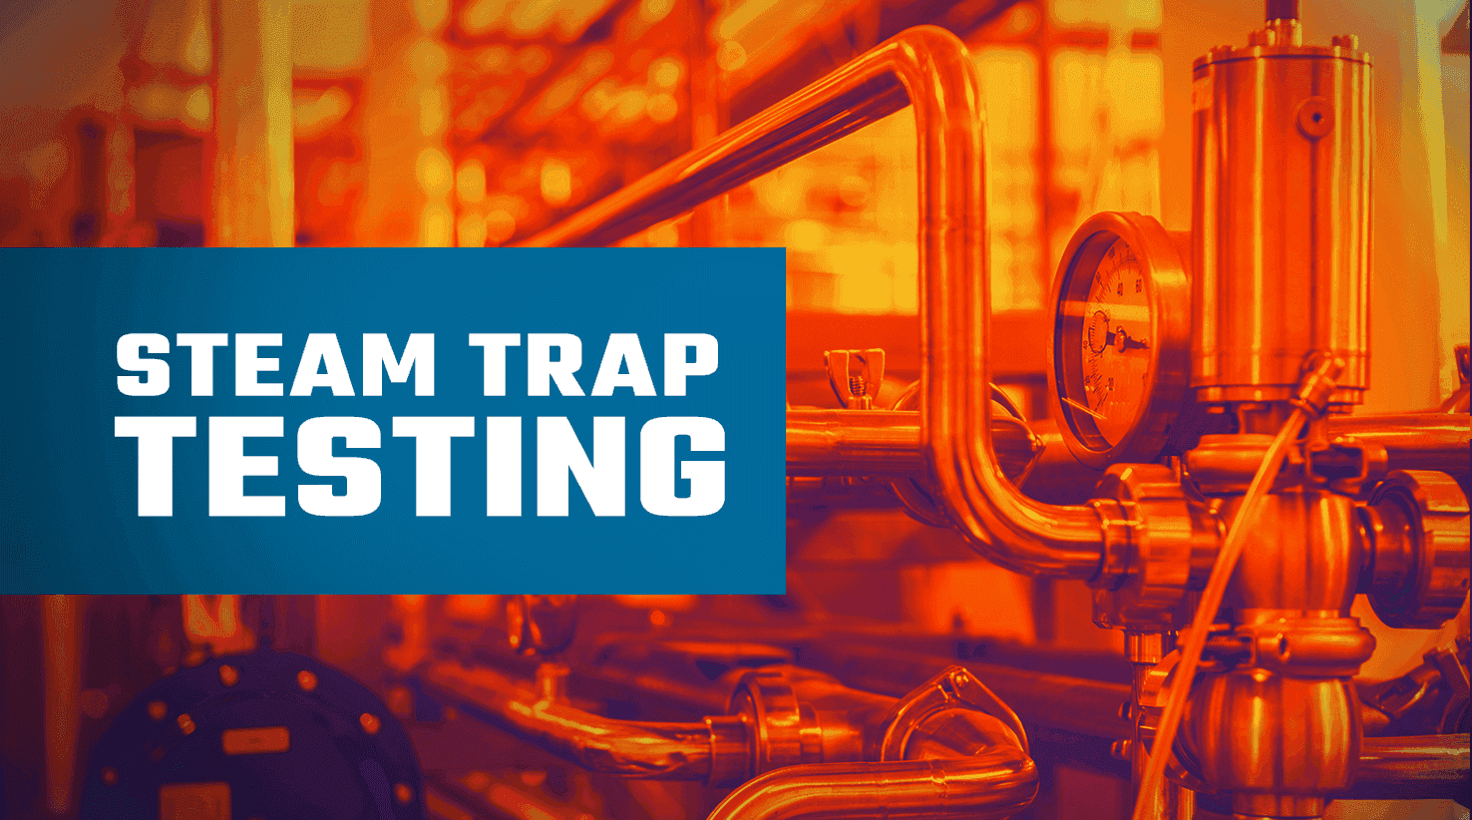 Steam Trap Testing with Infared and Ultrasound Devices